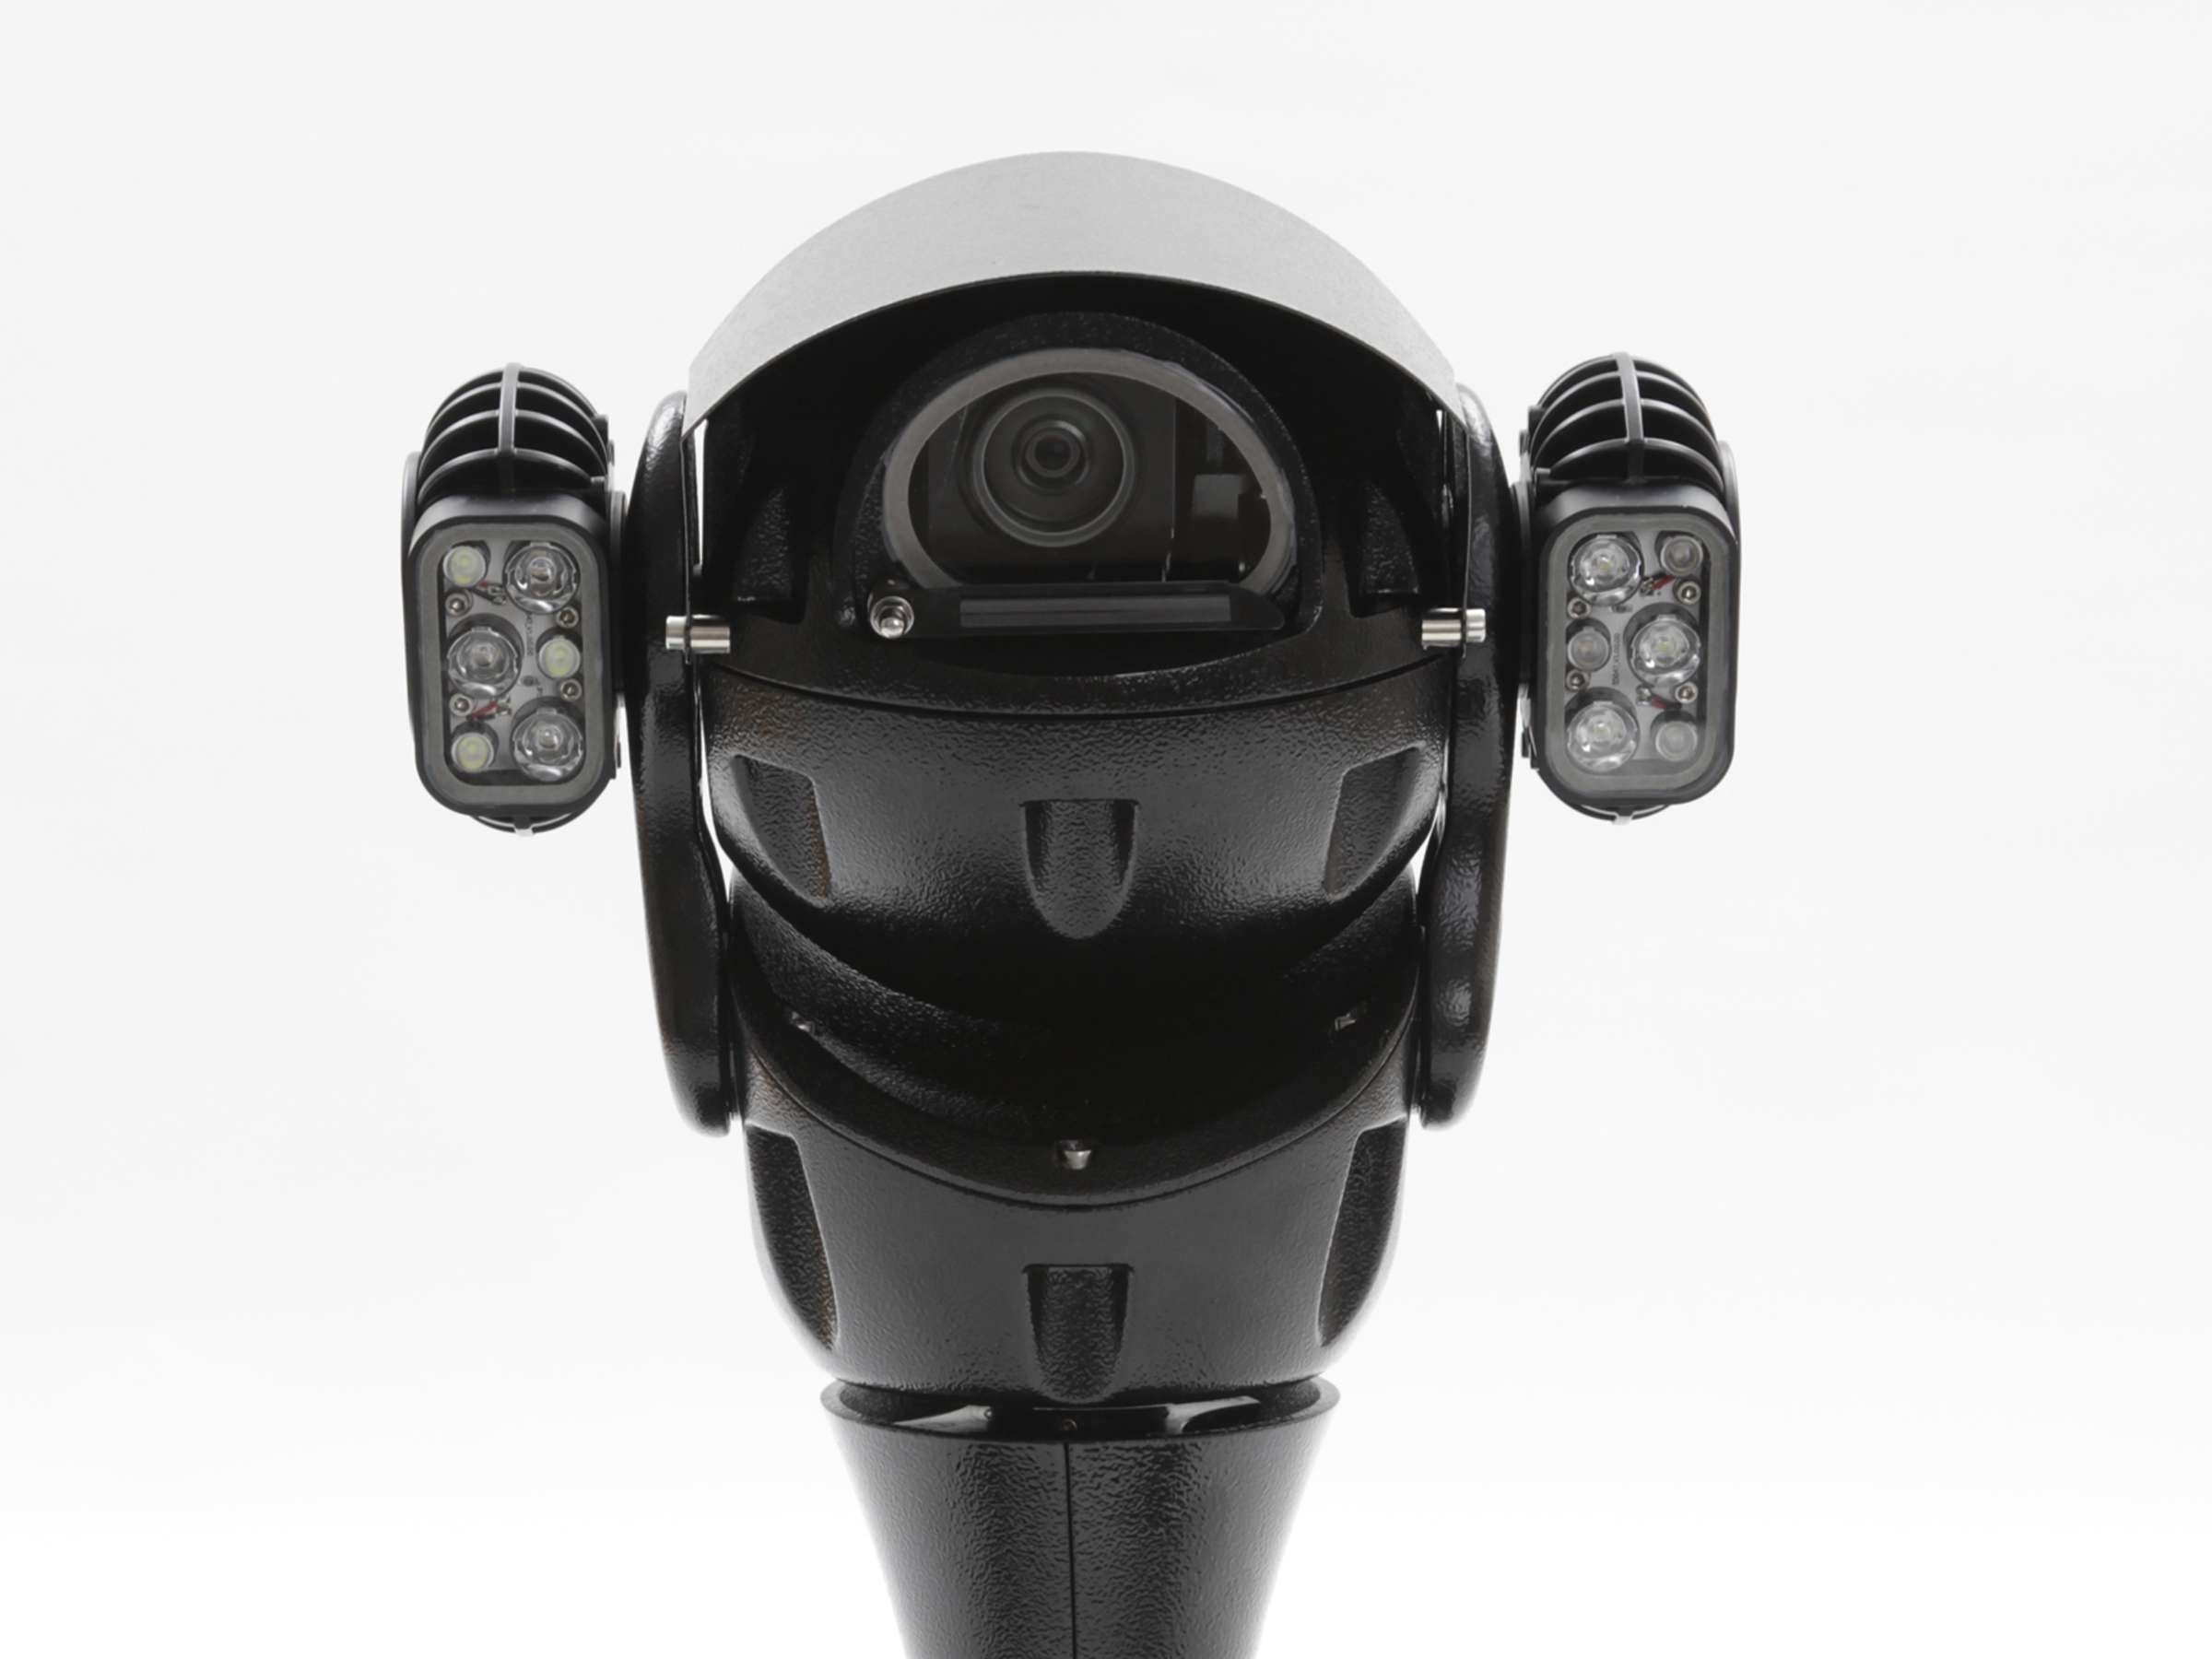 X-Series Rugged PTZ camera